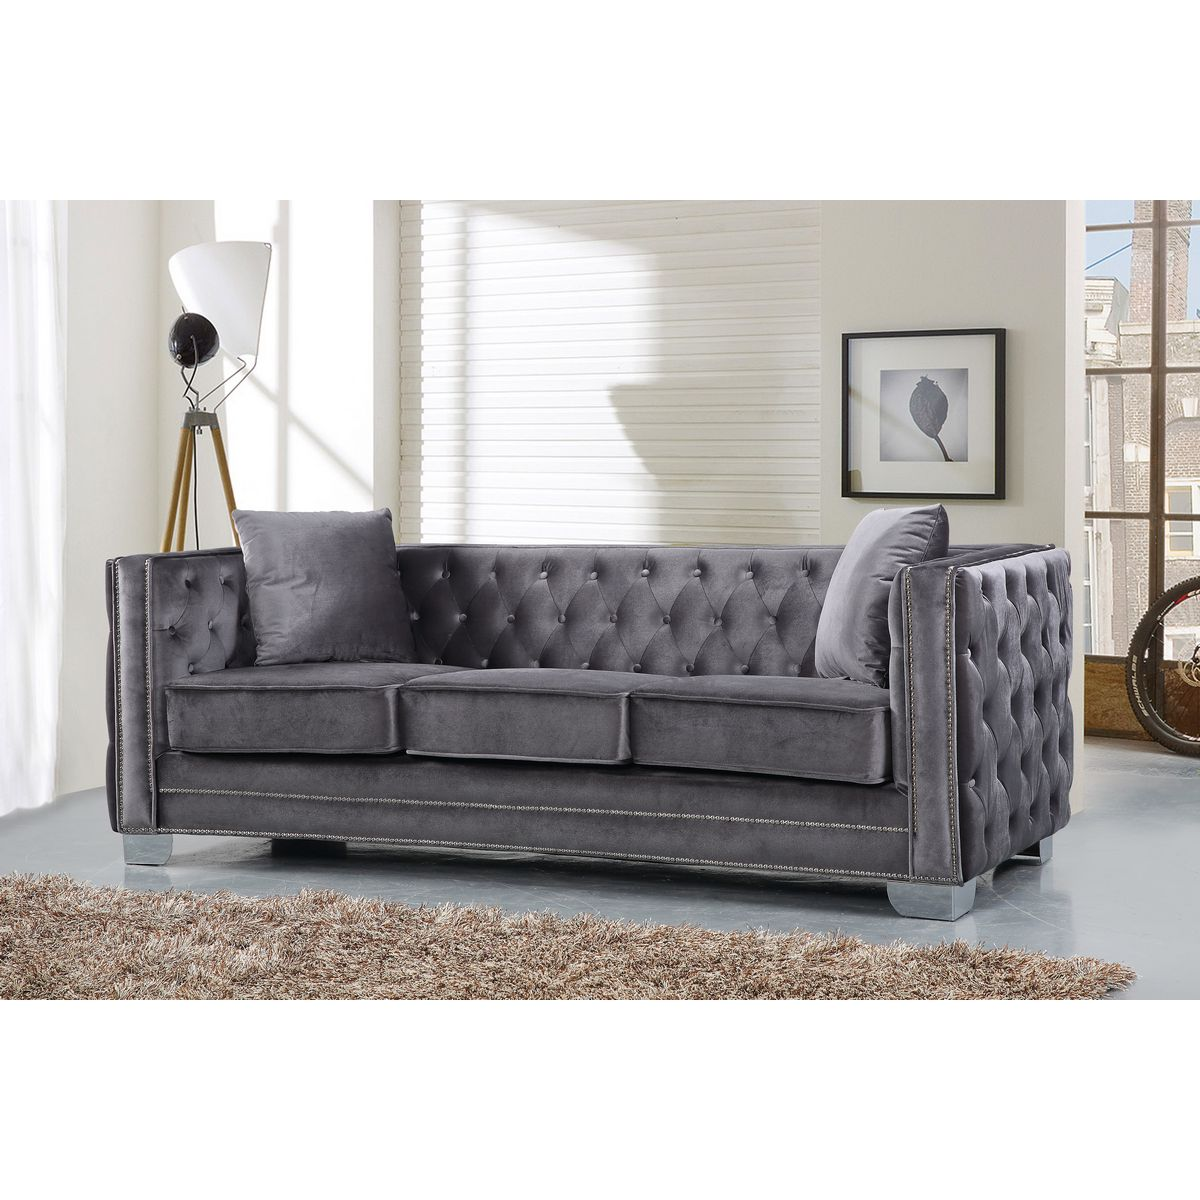 Meridian Furniture 648GRY-S Reese Grey Velvet Sofa W/ Tufted Back & Arms On  Metal Legs